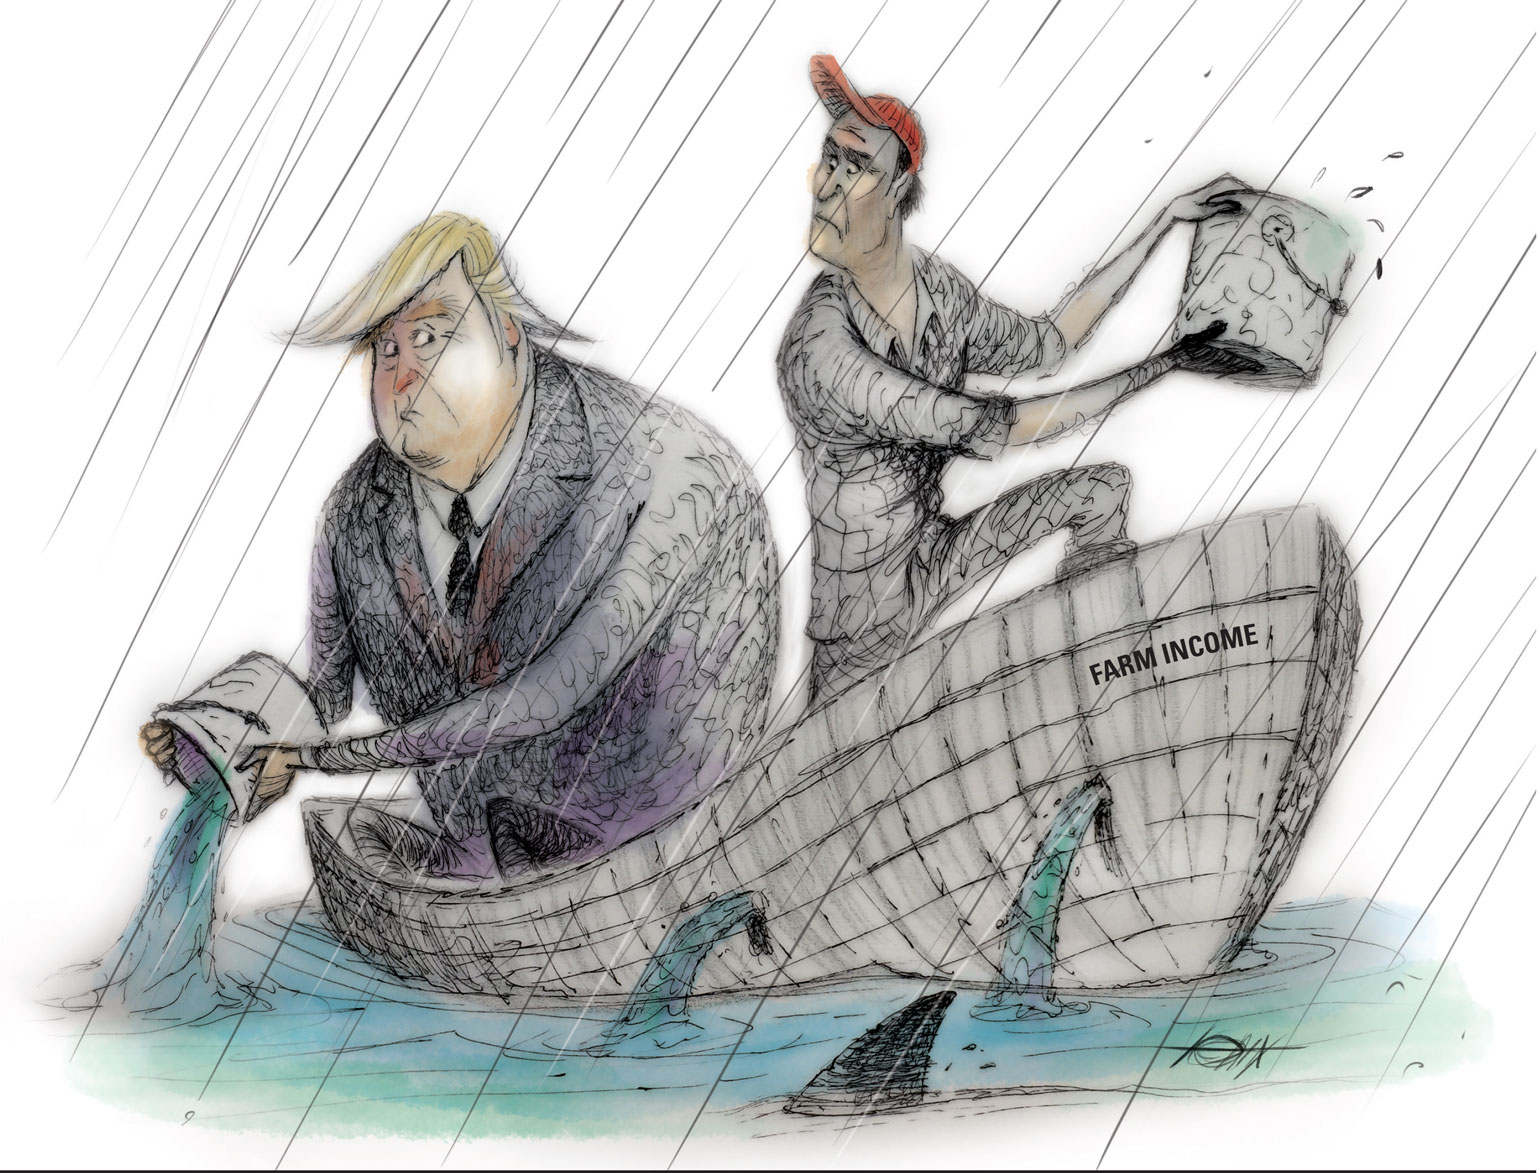 Illustration of Trump and farmer in boat that is sinking bailing out water with buckets.